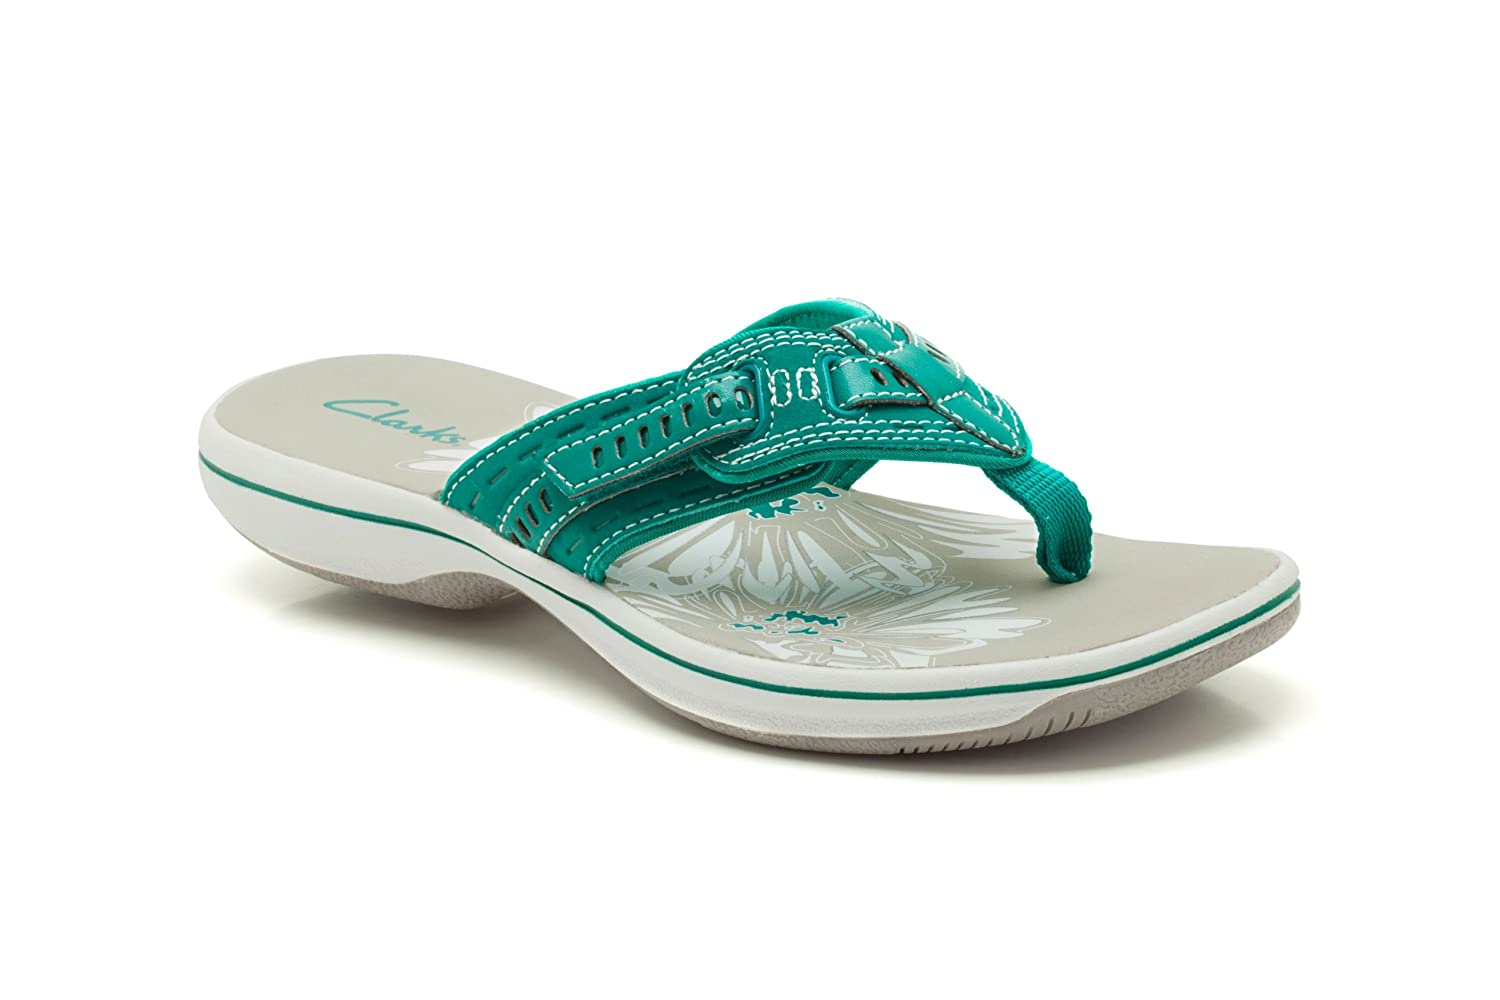 b8348987eaa6 Clarks Womens Casual Clarks Breeze Sky Synthetic Sandals In Teal Standard  Fit Size 3  Amazon.co.uk  Shoes   Bags